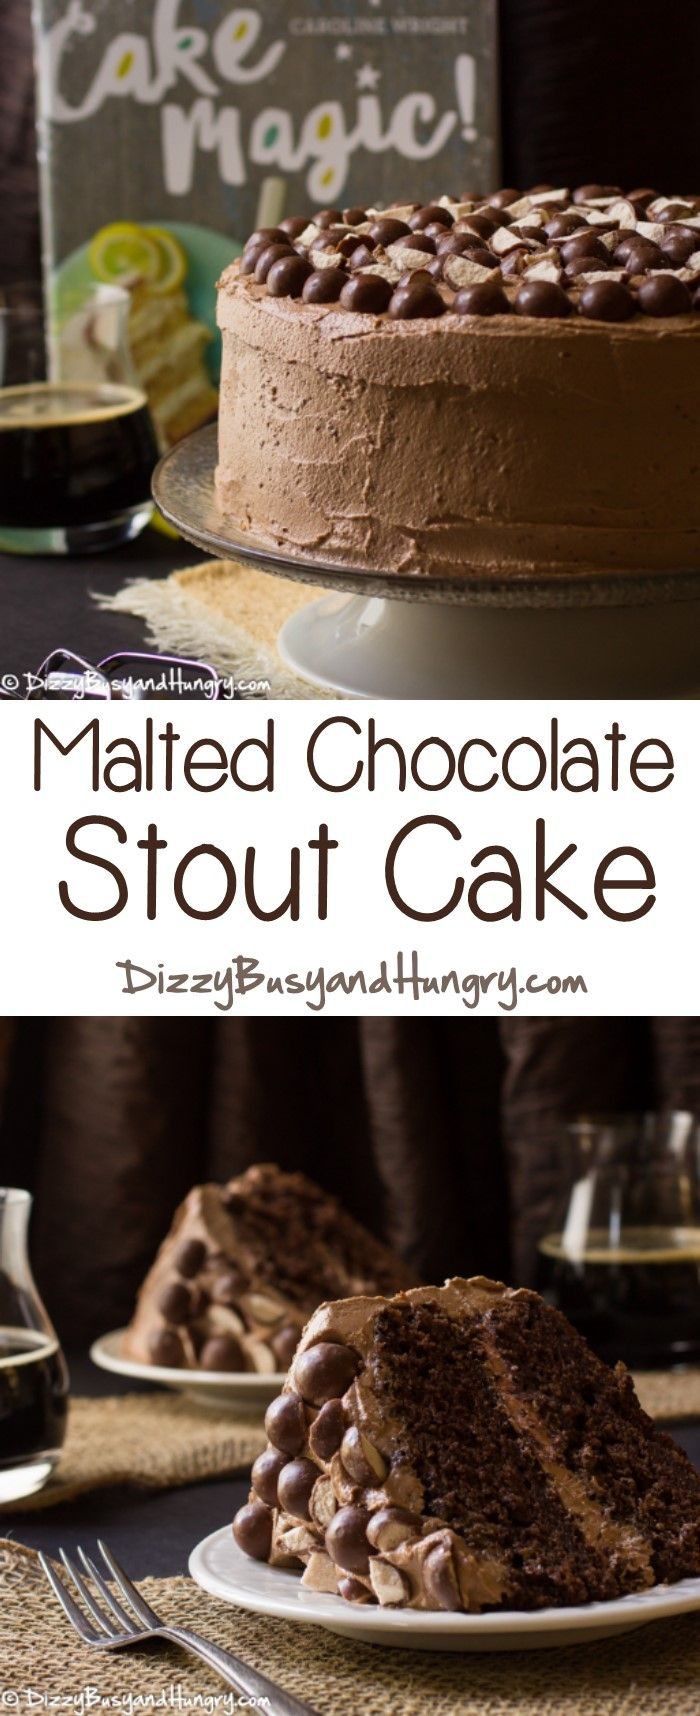 Malted Chocolate Stout Cake #WeekdaySupper #CakeMagic http://www.dizzybusyandhungry.com/malted-chocolate-stout-cake/